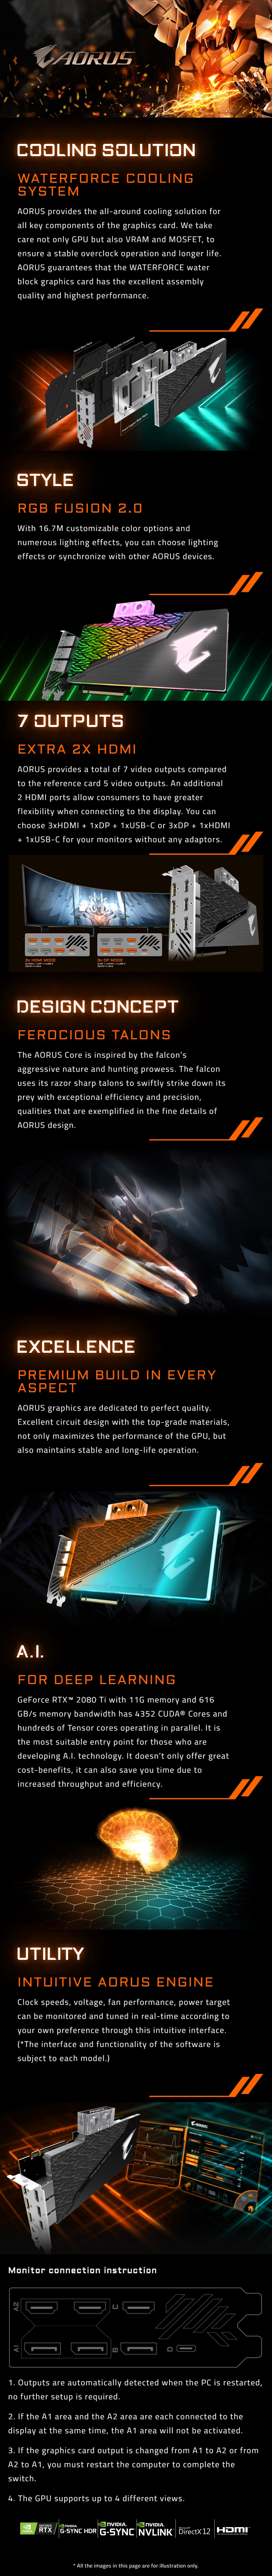 Gigabyte Aorus GeForce RTX 2080 Ti Xtreme Waterforce WB 11GB Graphic Card